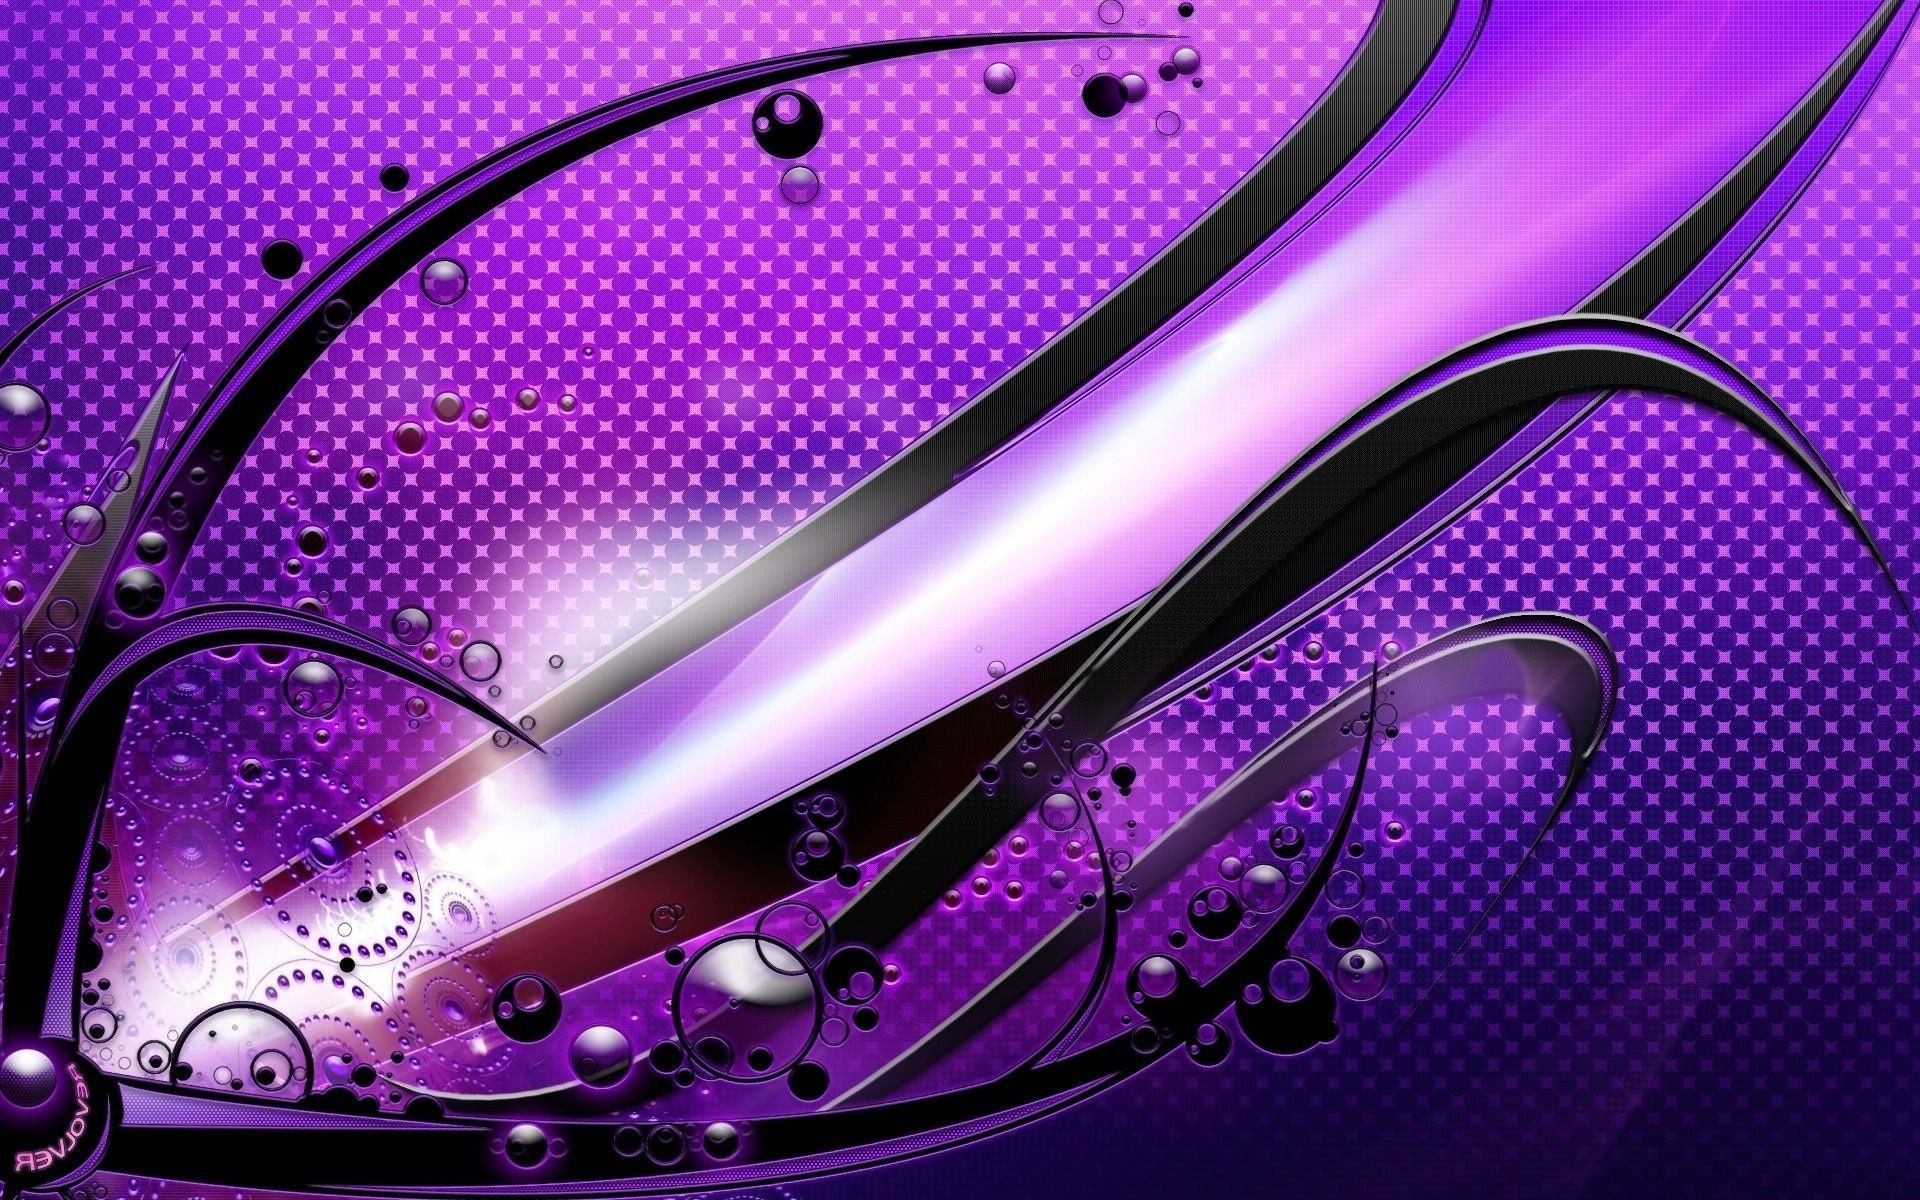 abstract design desktop technology modern illustration light science futuristic art color graphic wallpaper